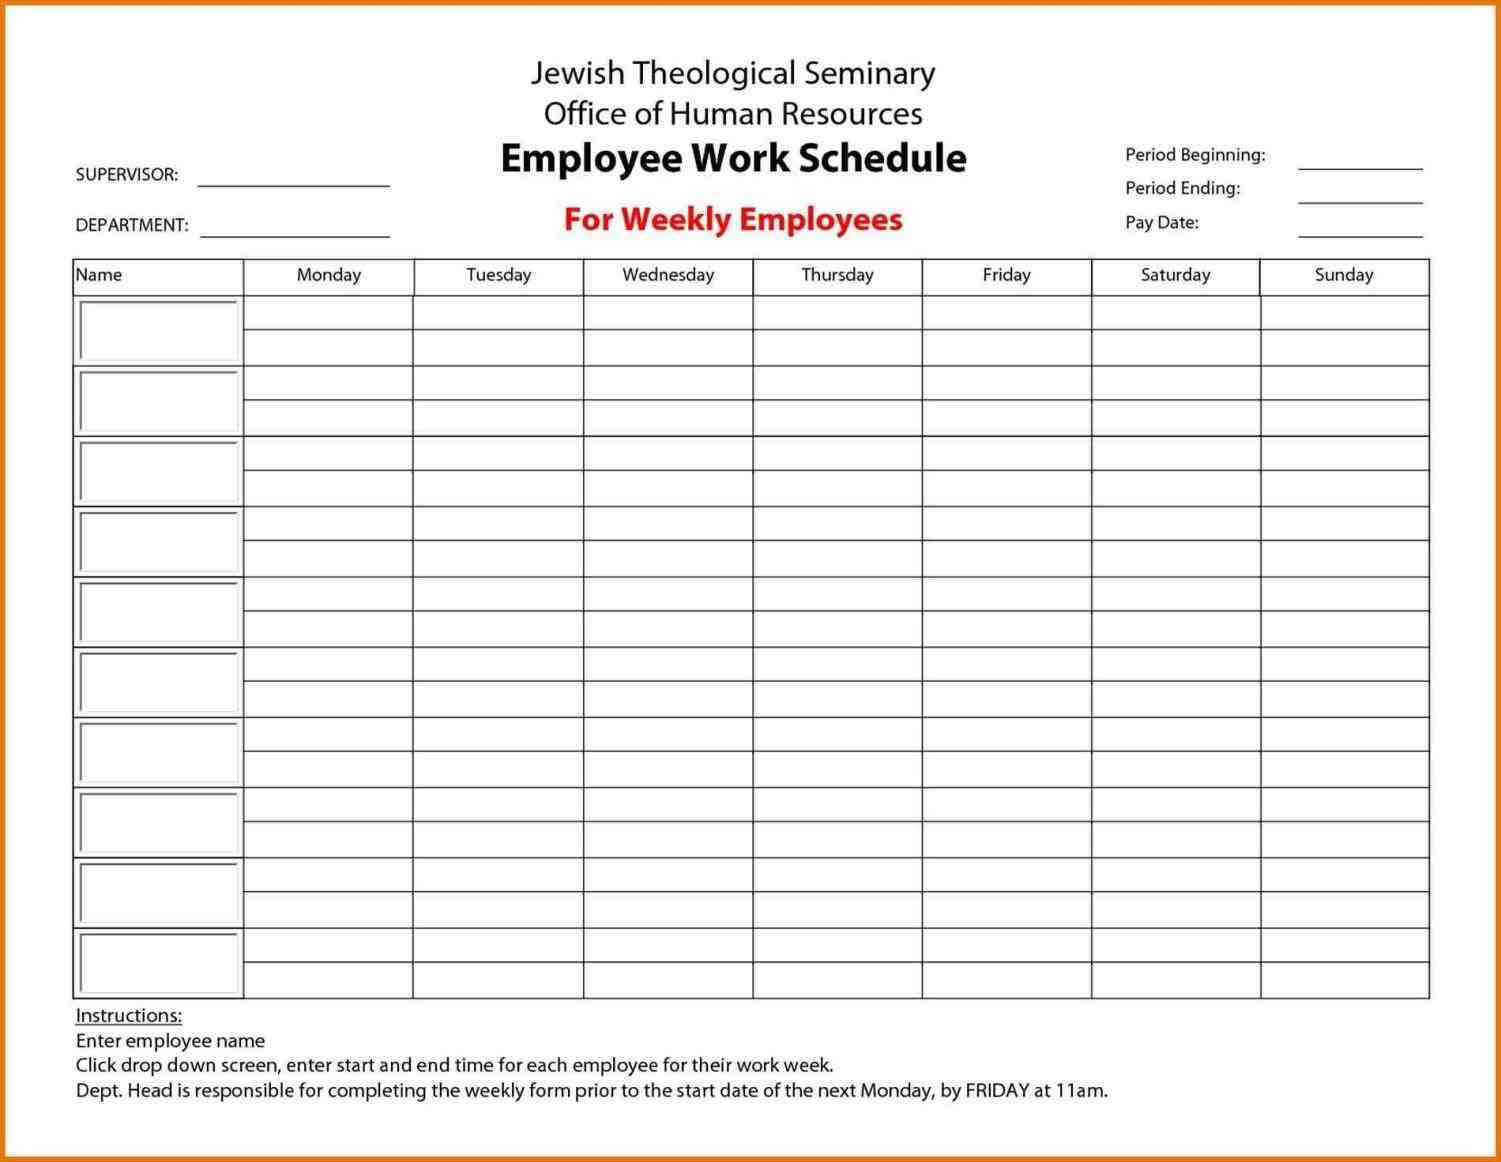 employee Employee Work Calendars work calendars schedule calendar free weekly templates for excel free Employee Work Calendars weekly schedule